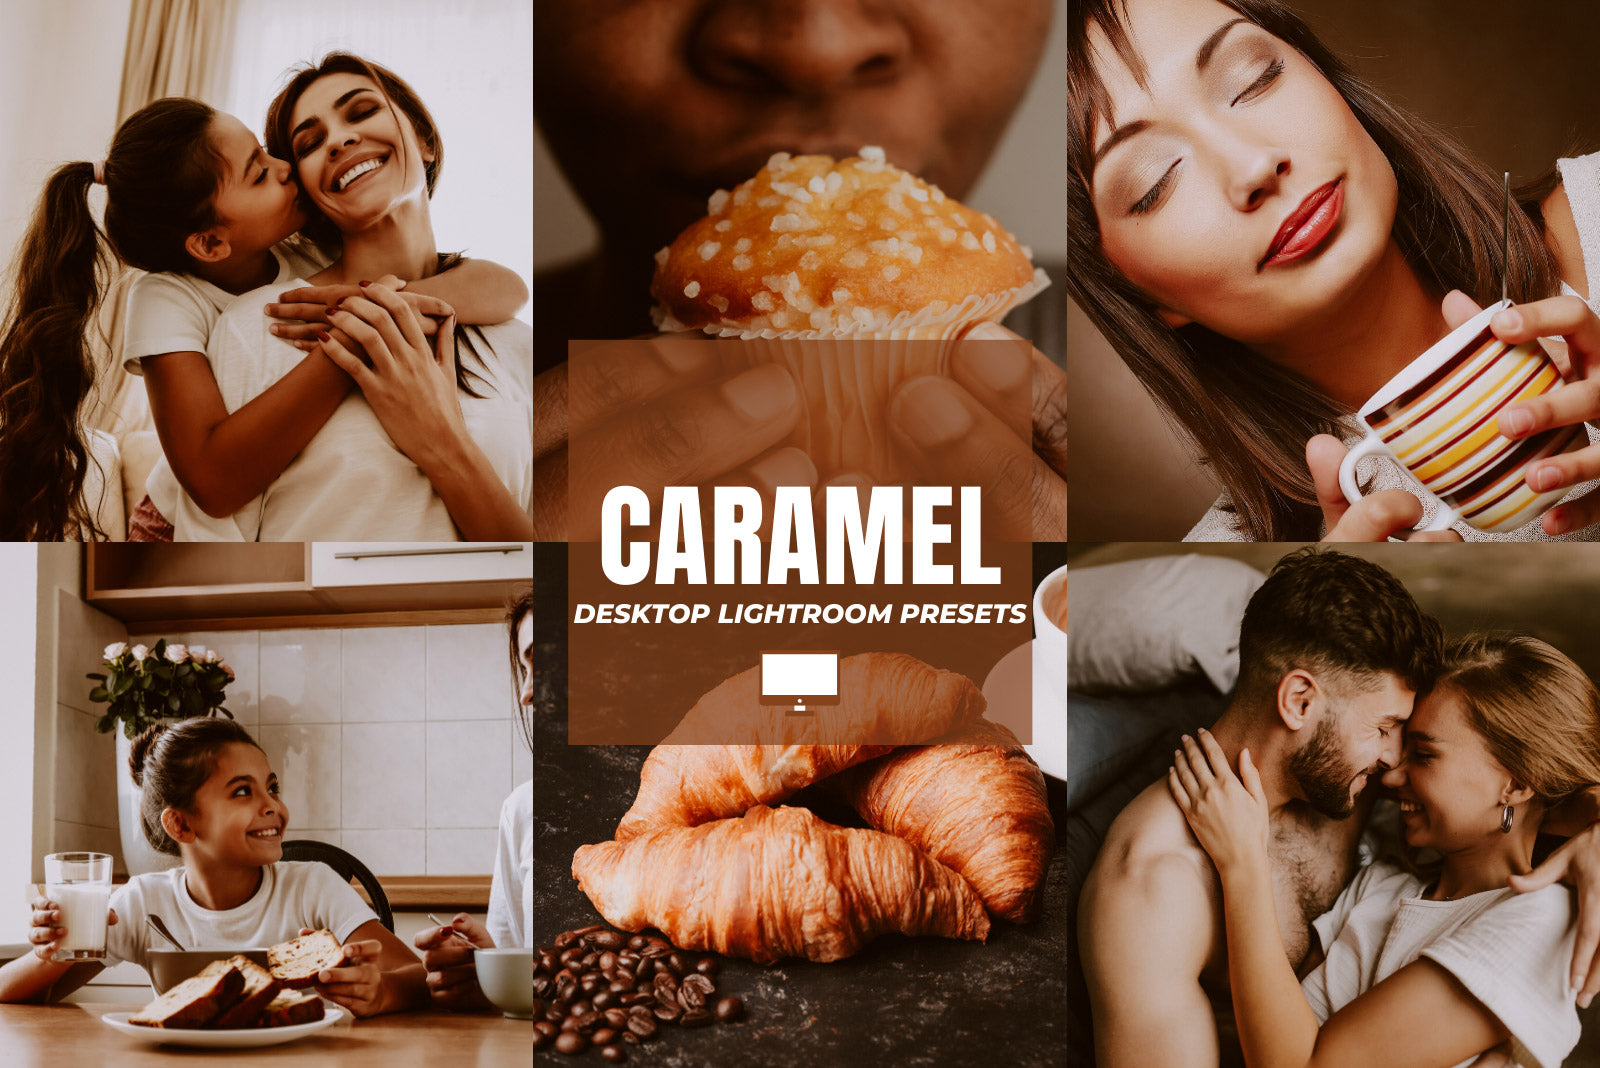 CARAMEL DESKTOP LIGHTROOM PRESETS by The Viral Presets